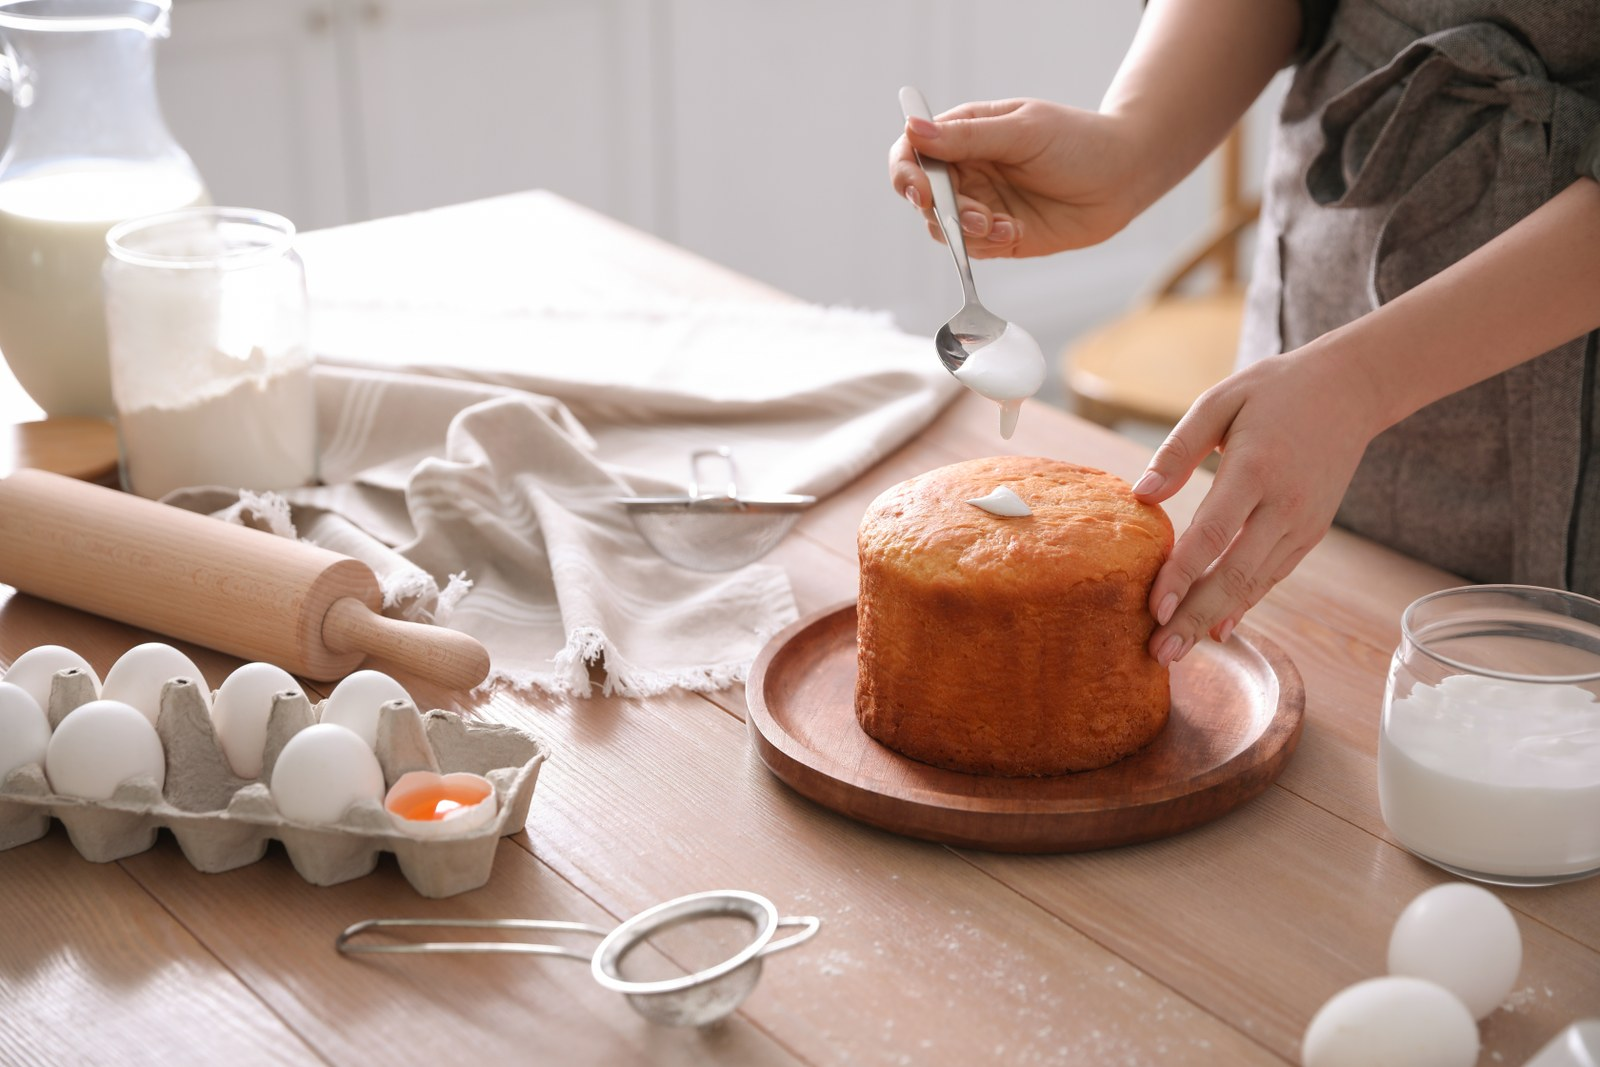 Young woman decorating traditional Easter cake with glaze in kitchen, closeup